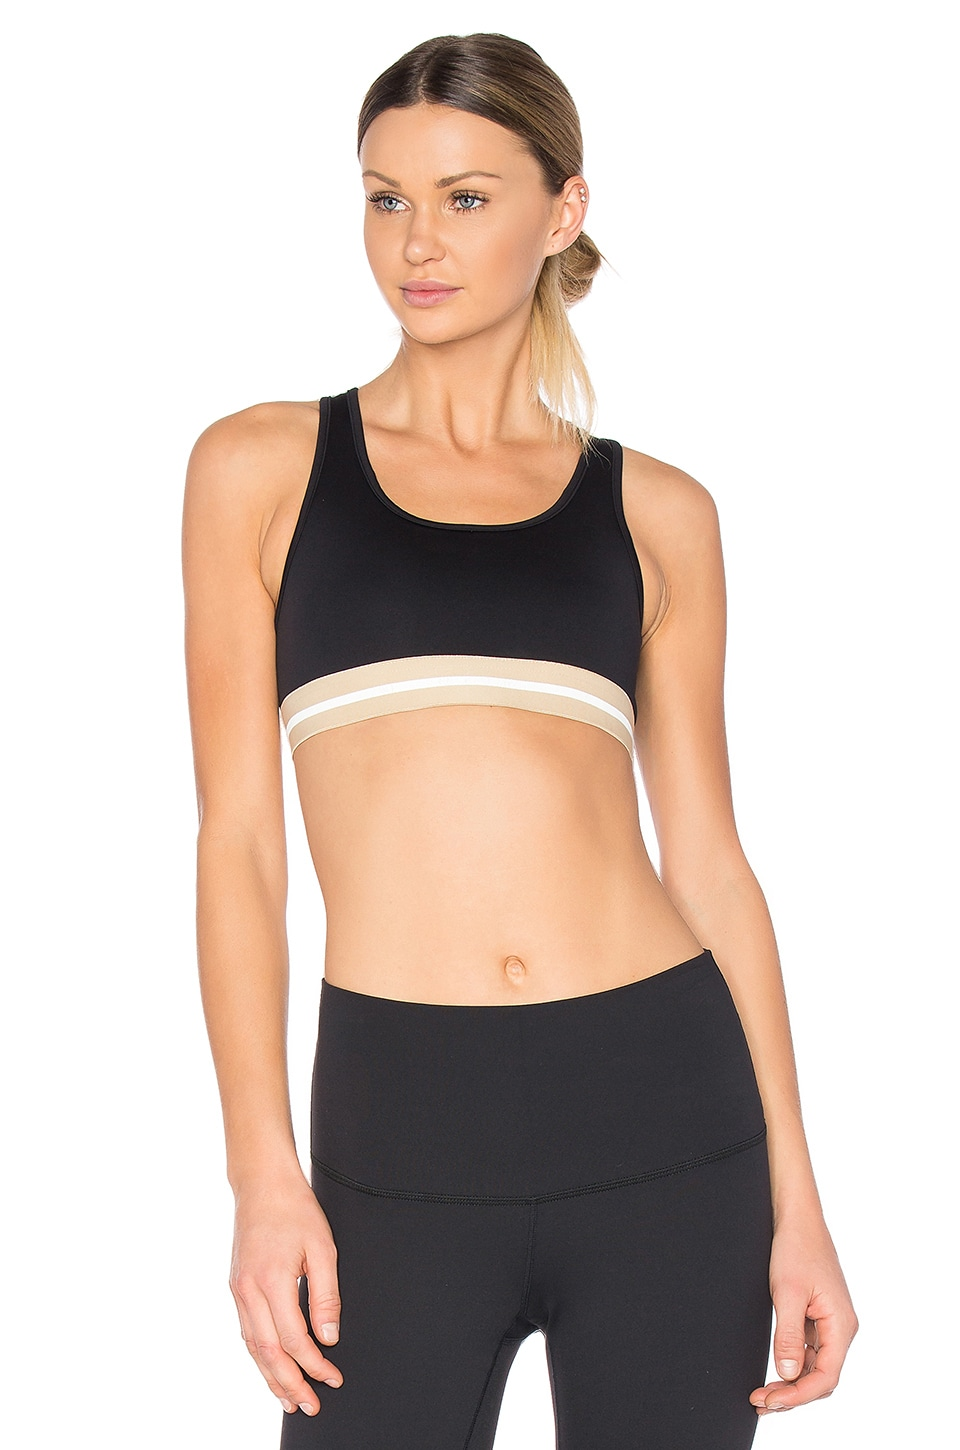 x MORGAN STEWART Marlene Sports Bra by Touche LA